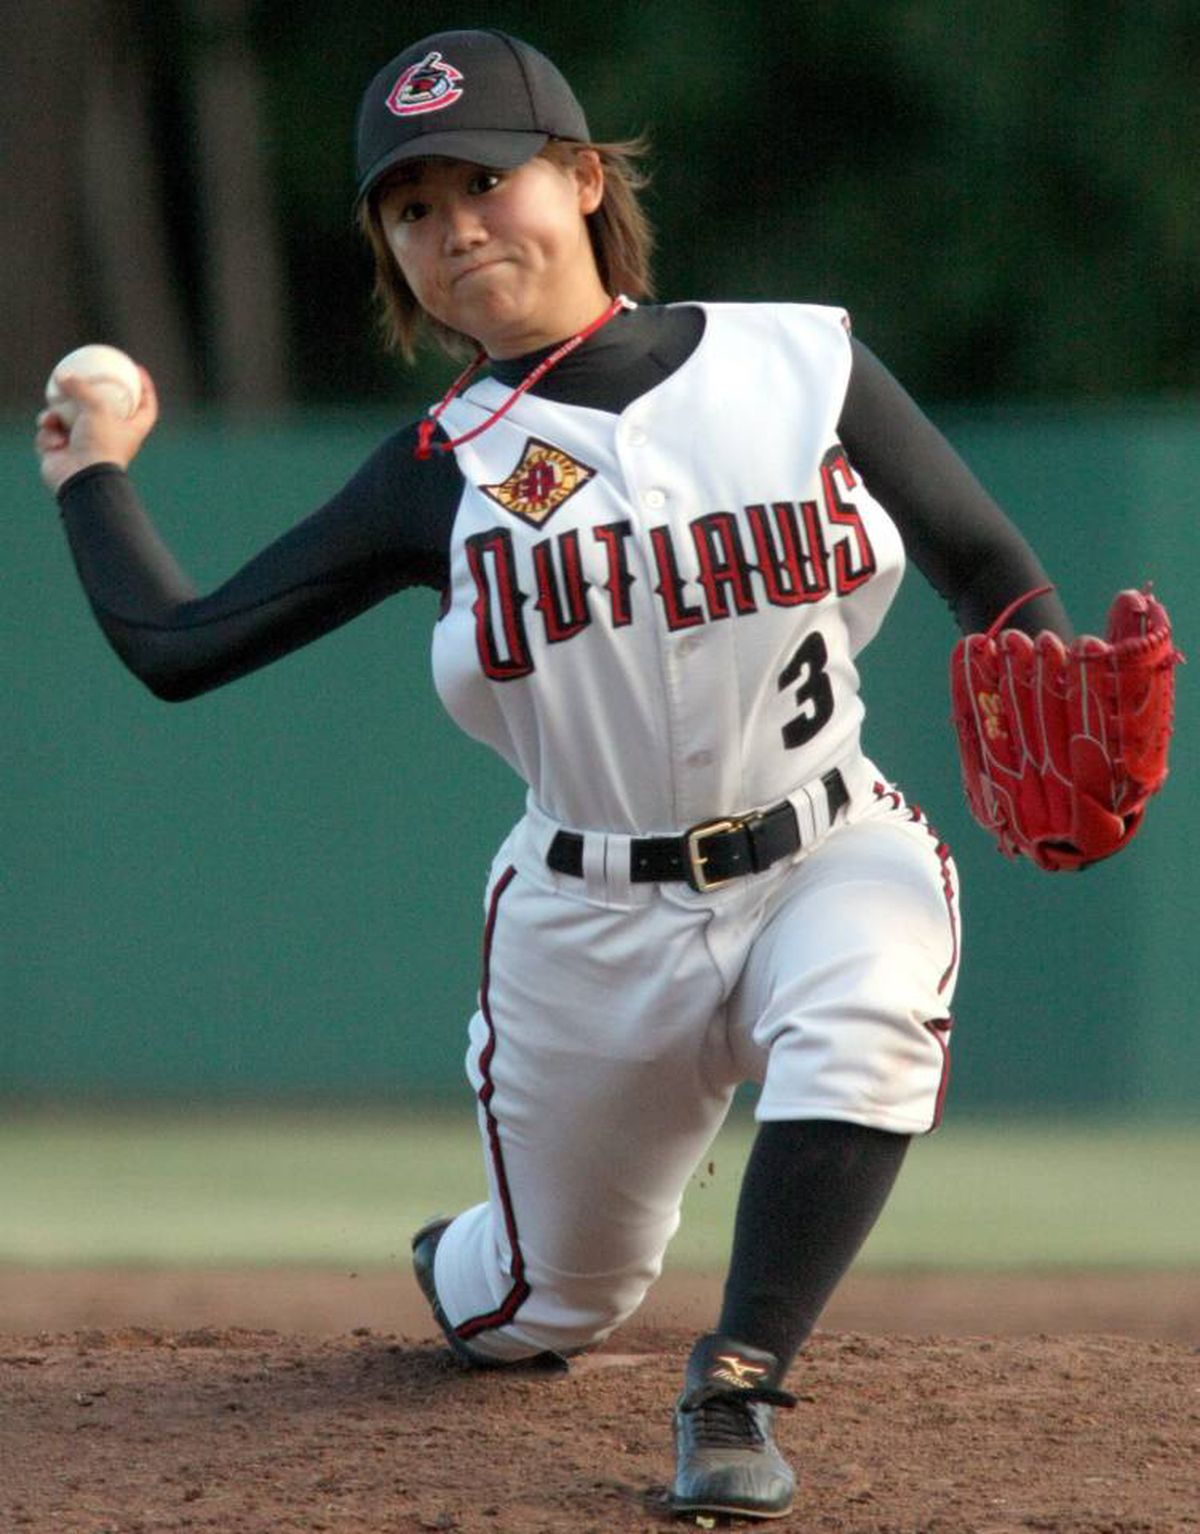 Chico Outlaws 18 year old female pitcher Eri Yoshida, of Japan, pitches against the Edmonton Capitals in the the second inning at Nettleton Stadium on June 24, 2010, in Chico, Calif.